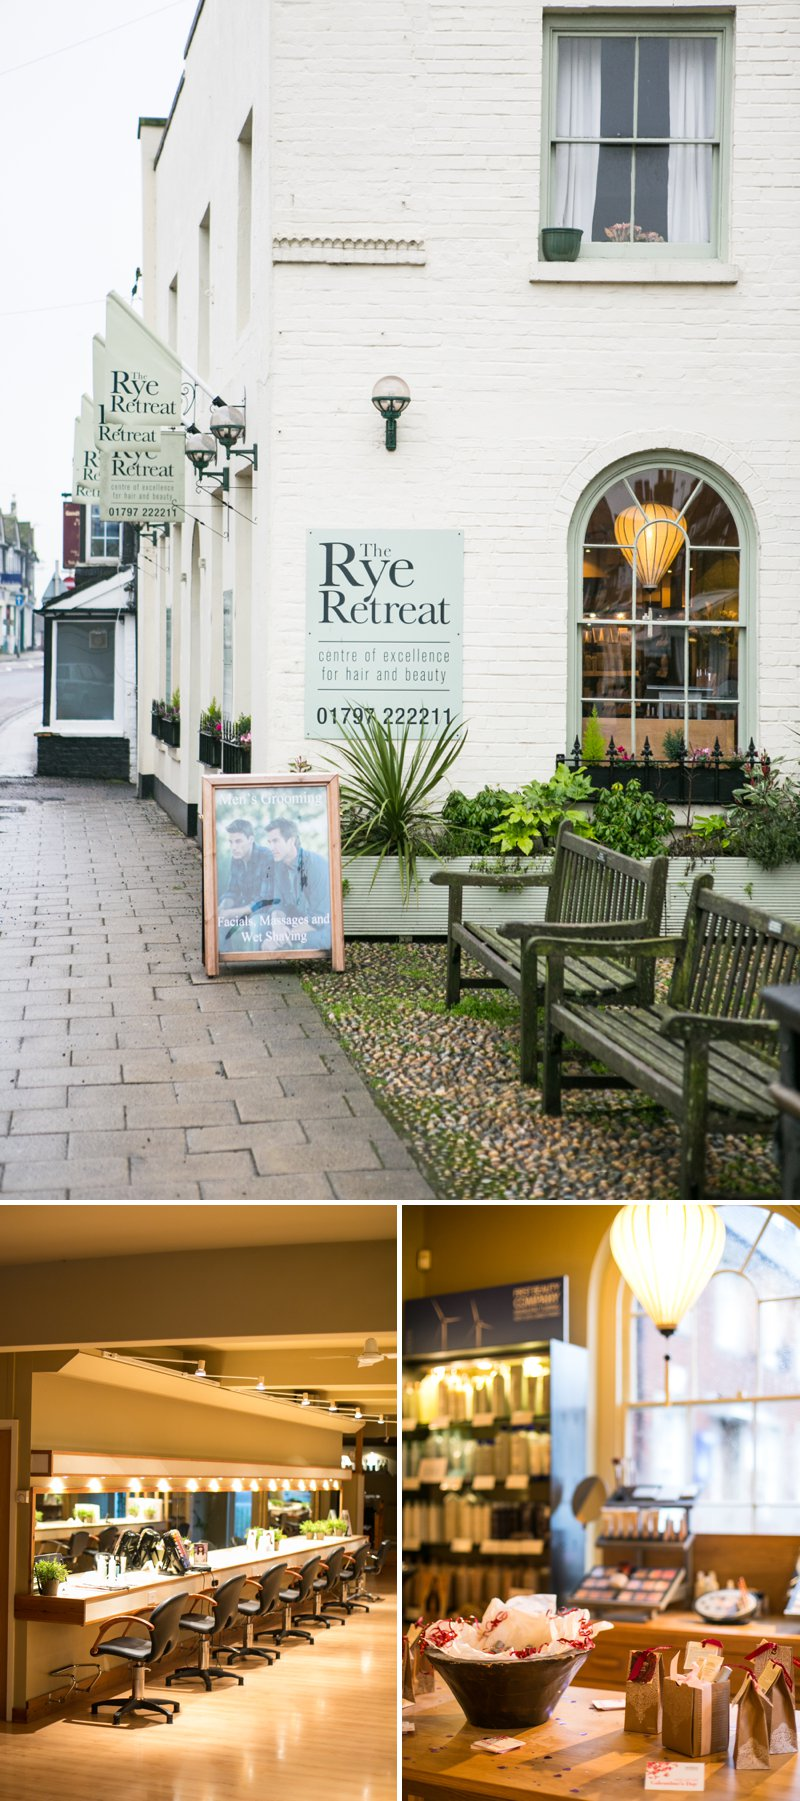 Rye Retreat I Left My Heart In Rye.